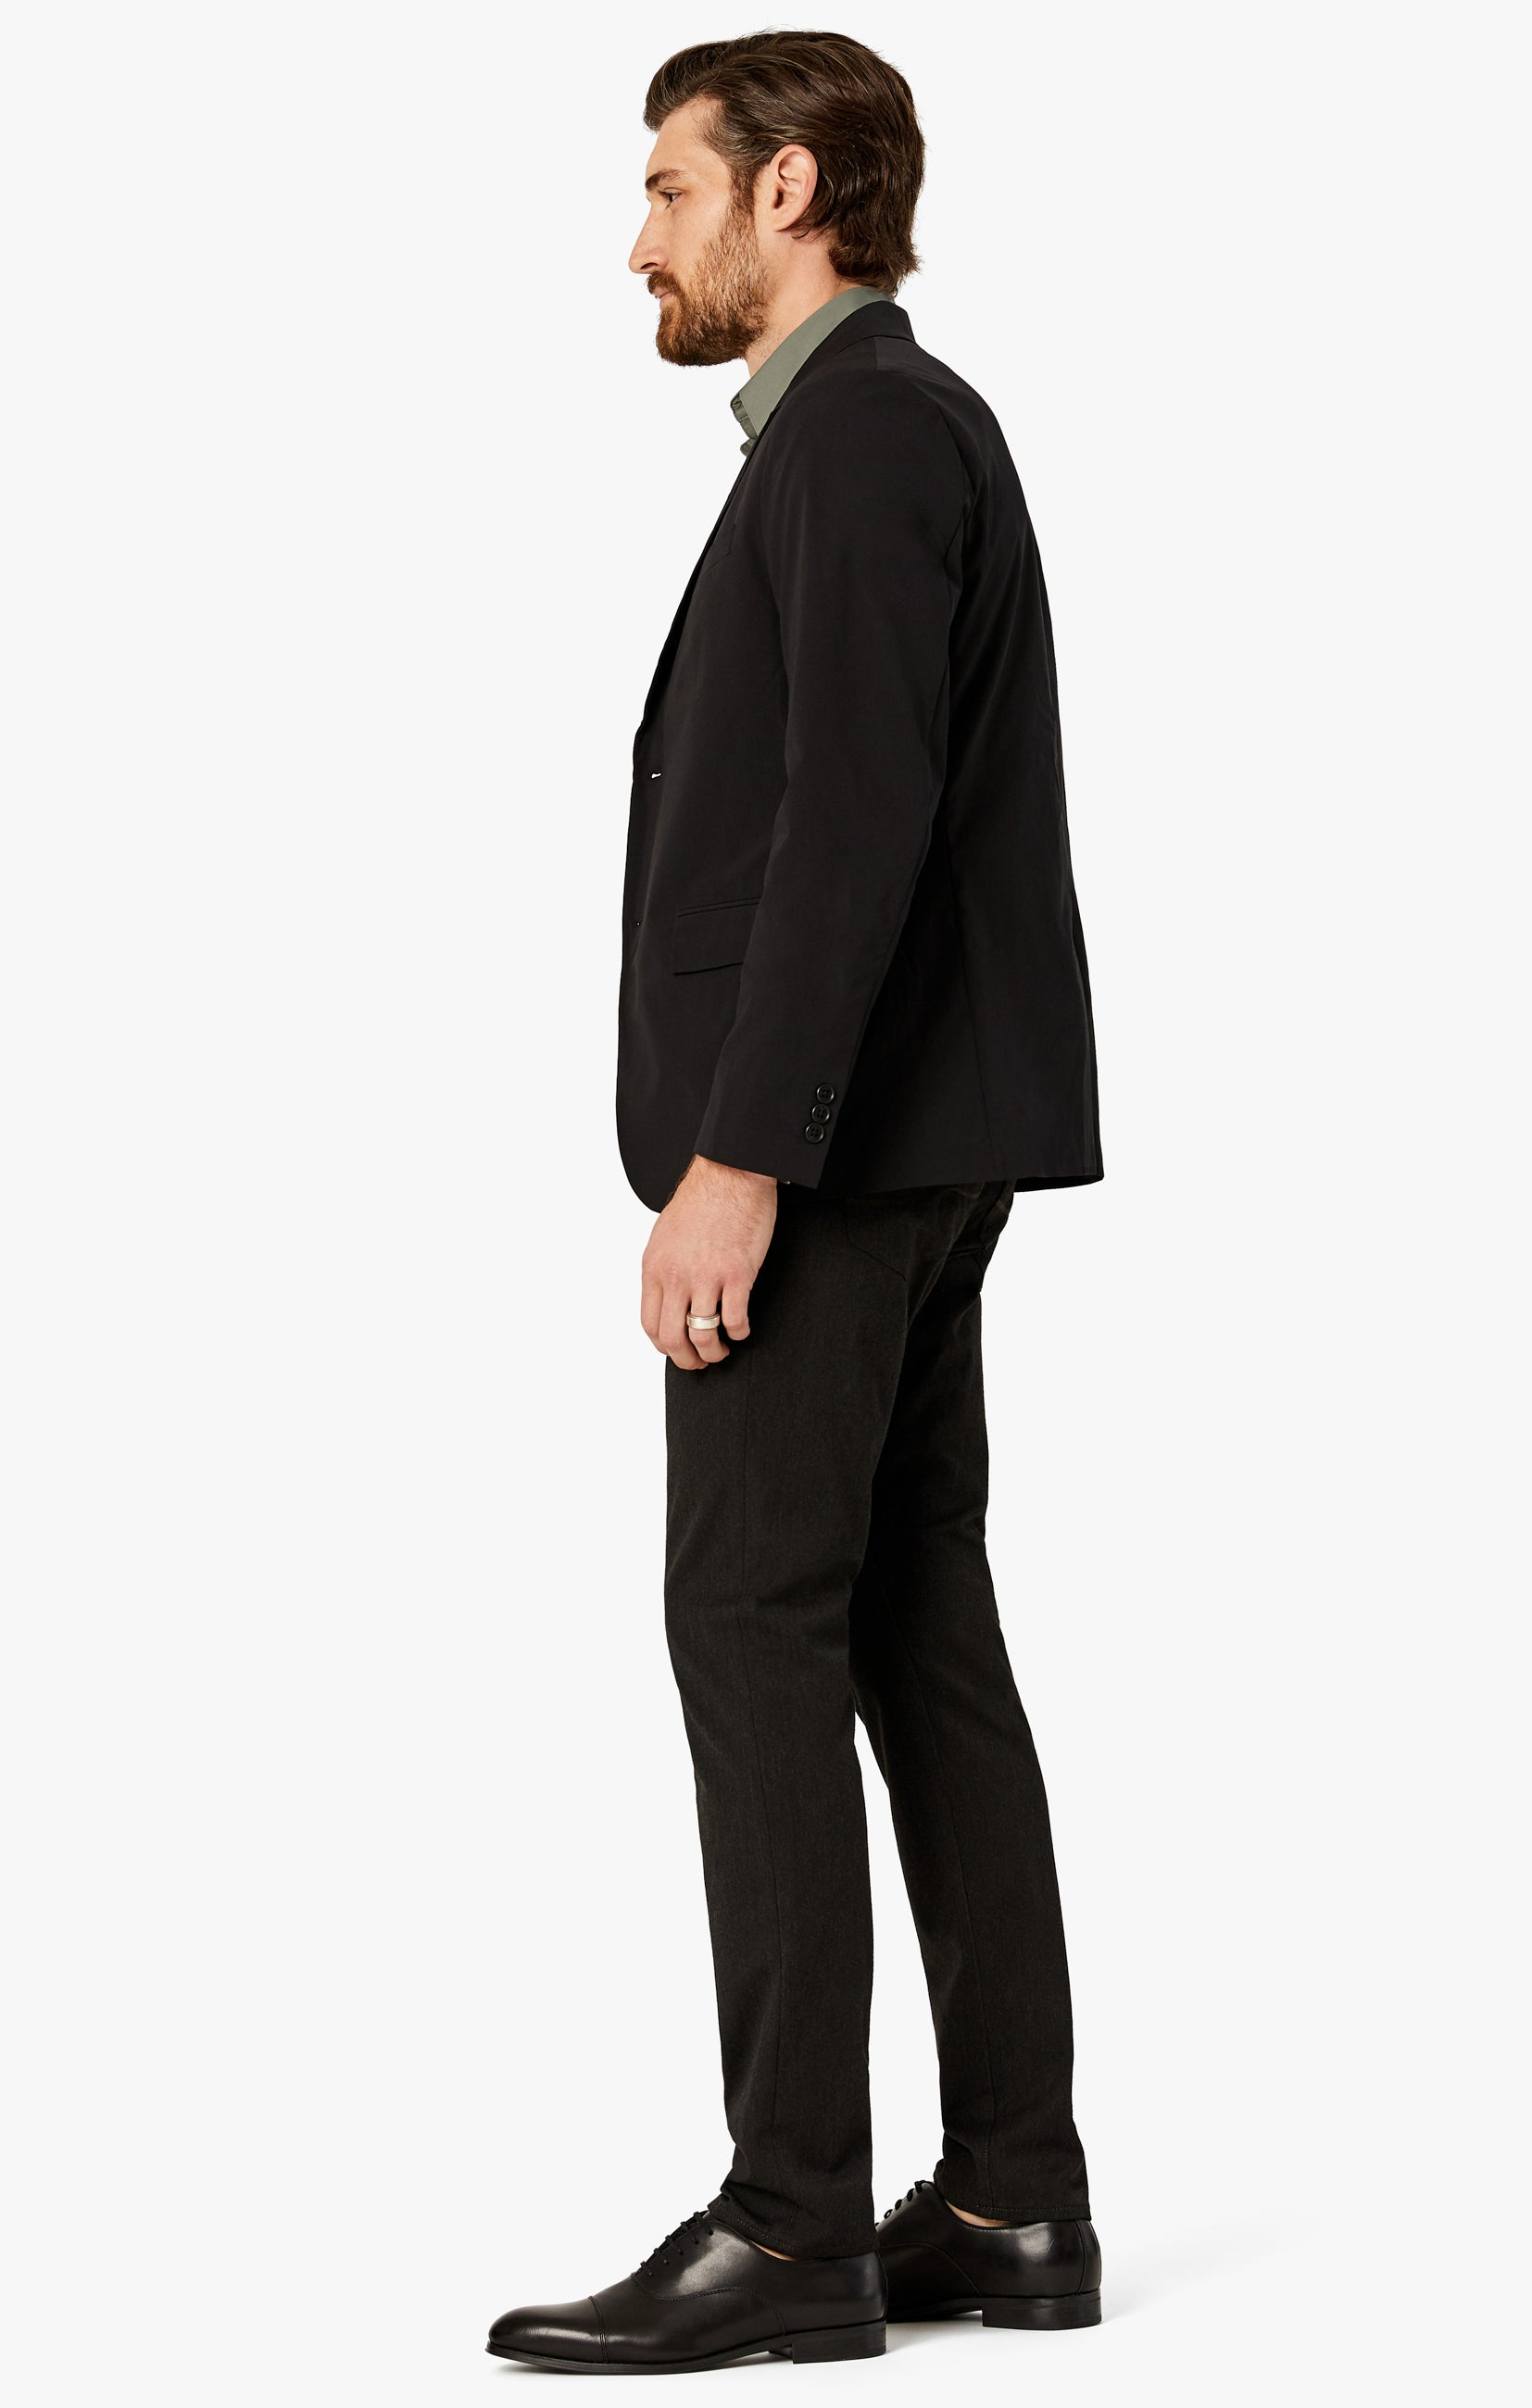 Cool Tapered Leg Pants In Charcoal Winter Cashmere Image 4